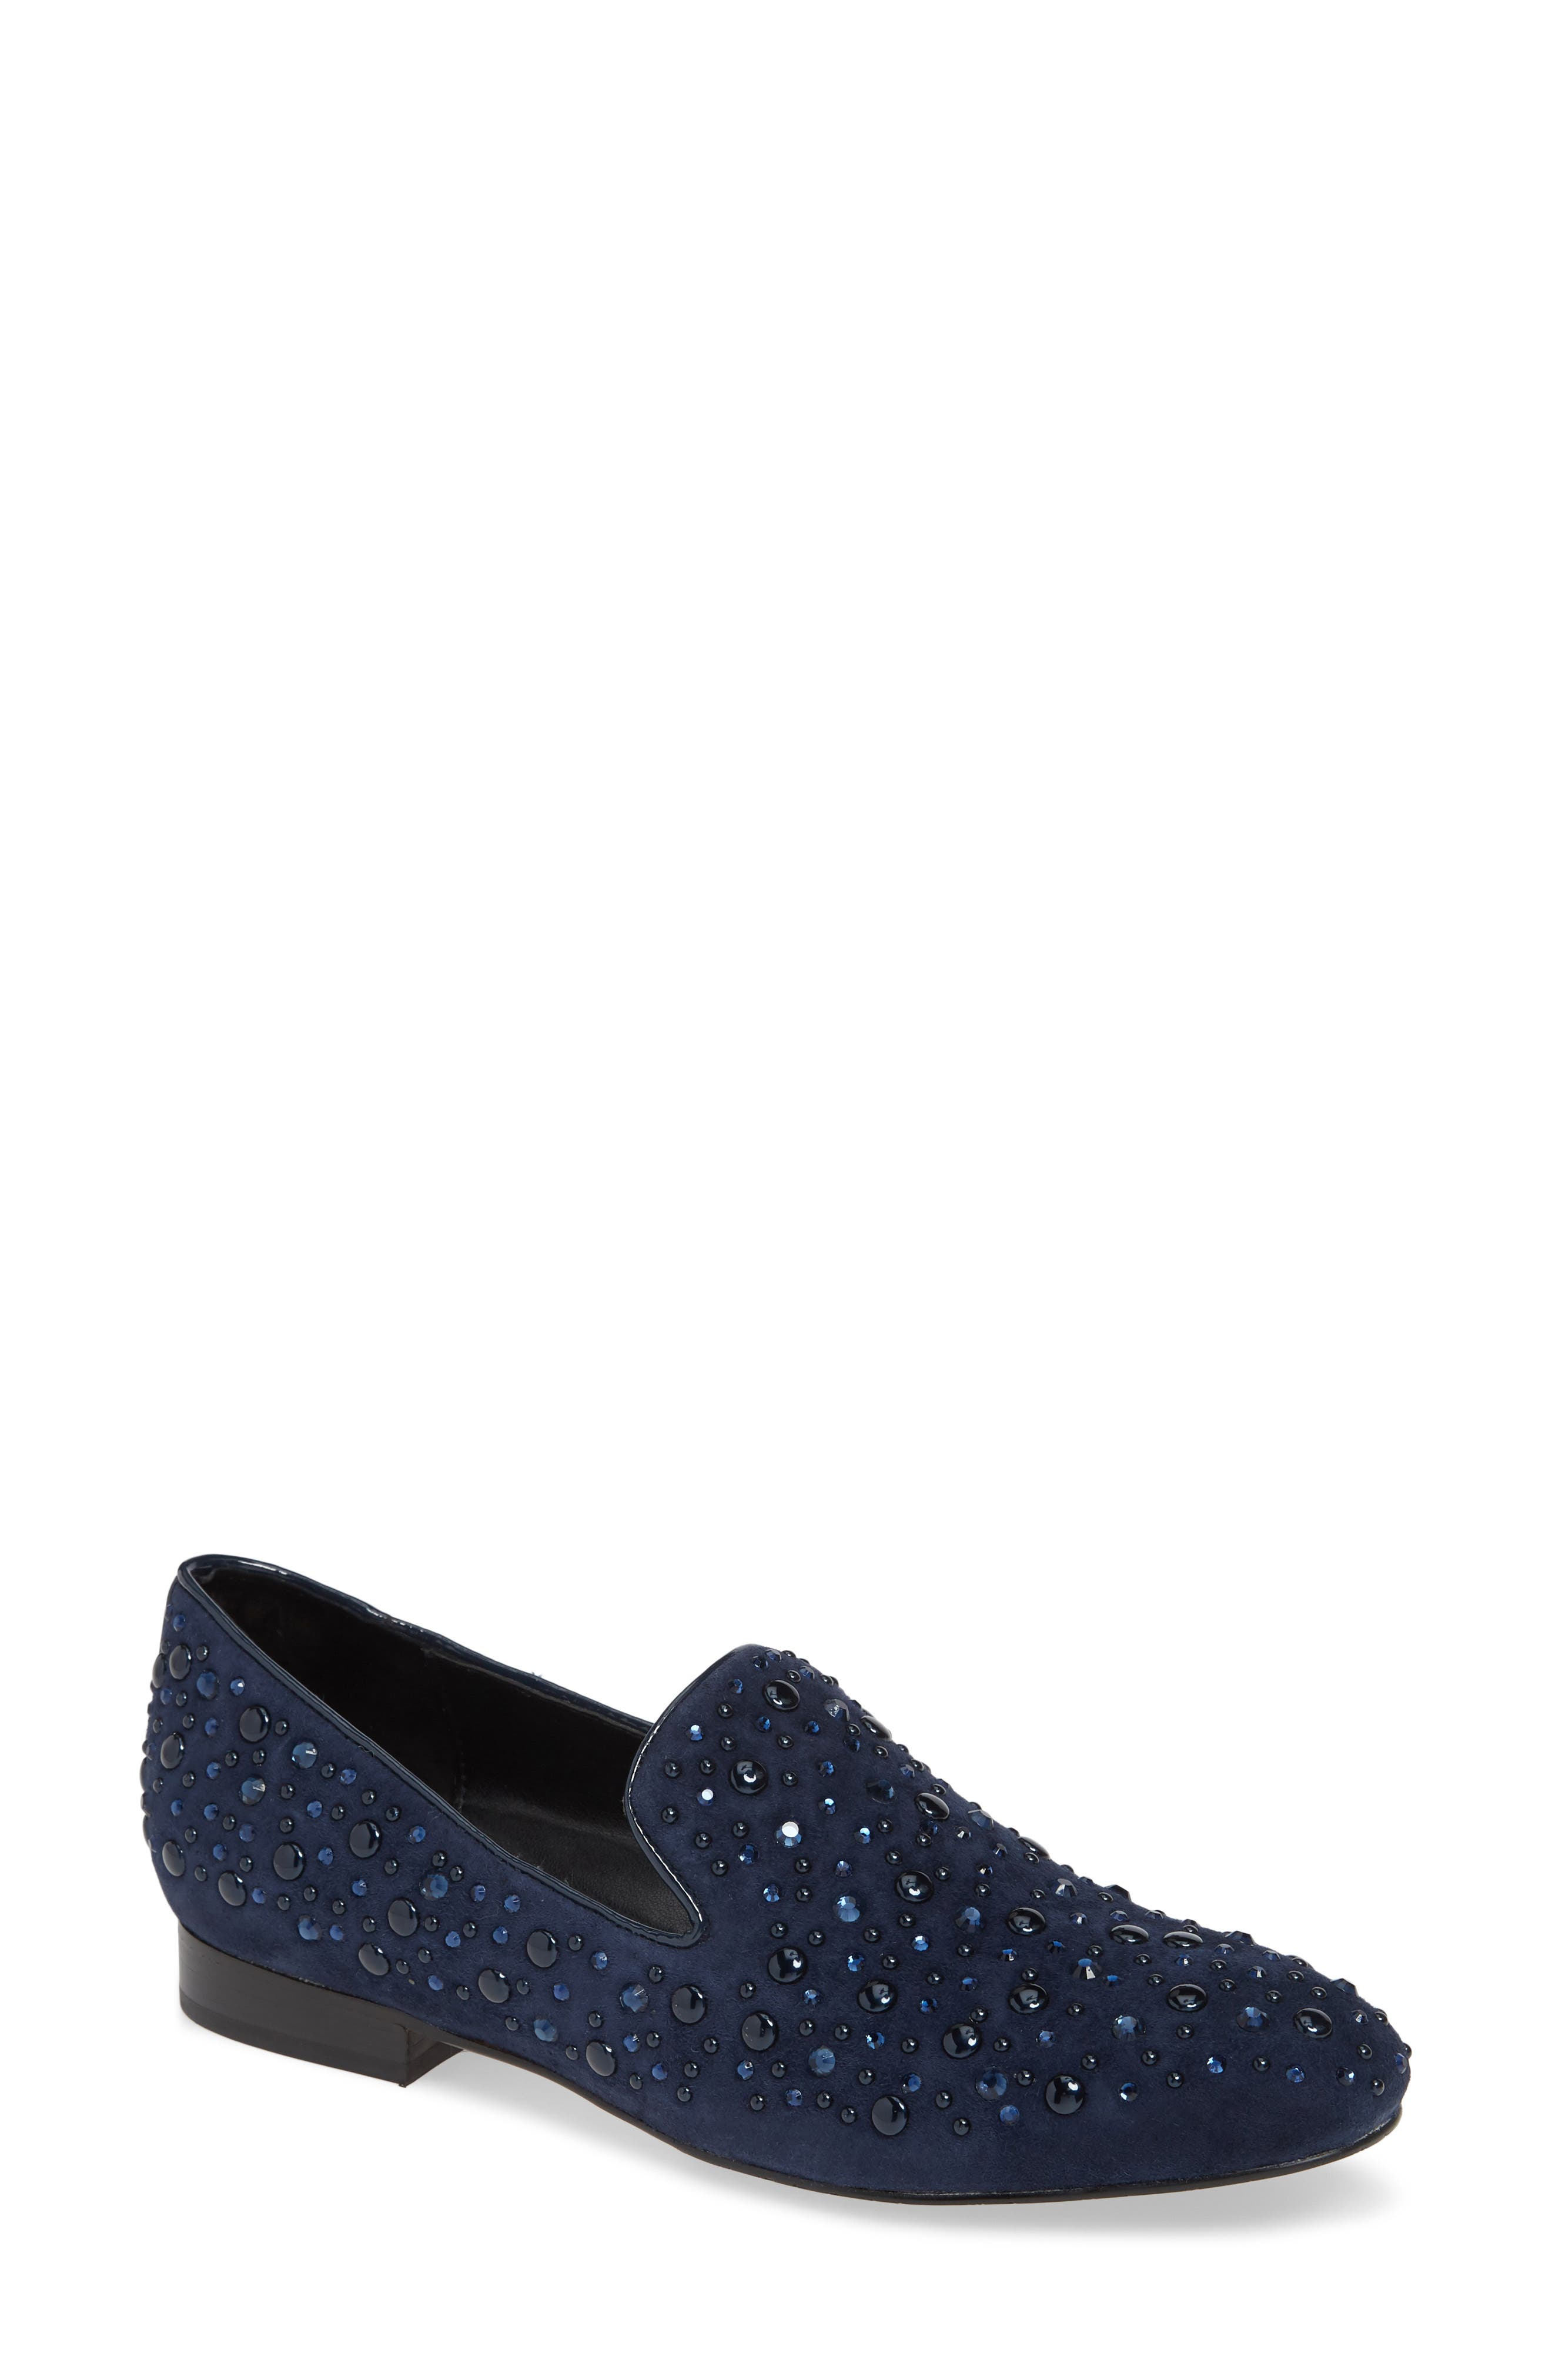 Lynn Loafer Flat,                         Main,                         color, NAVY SUEDE